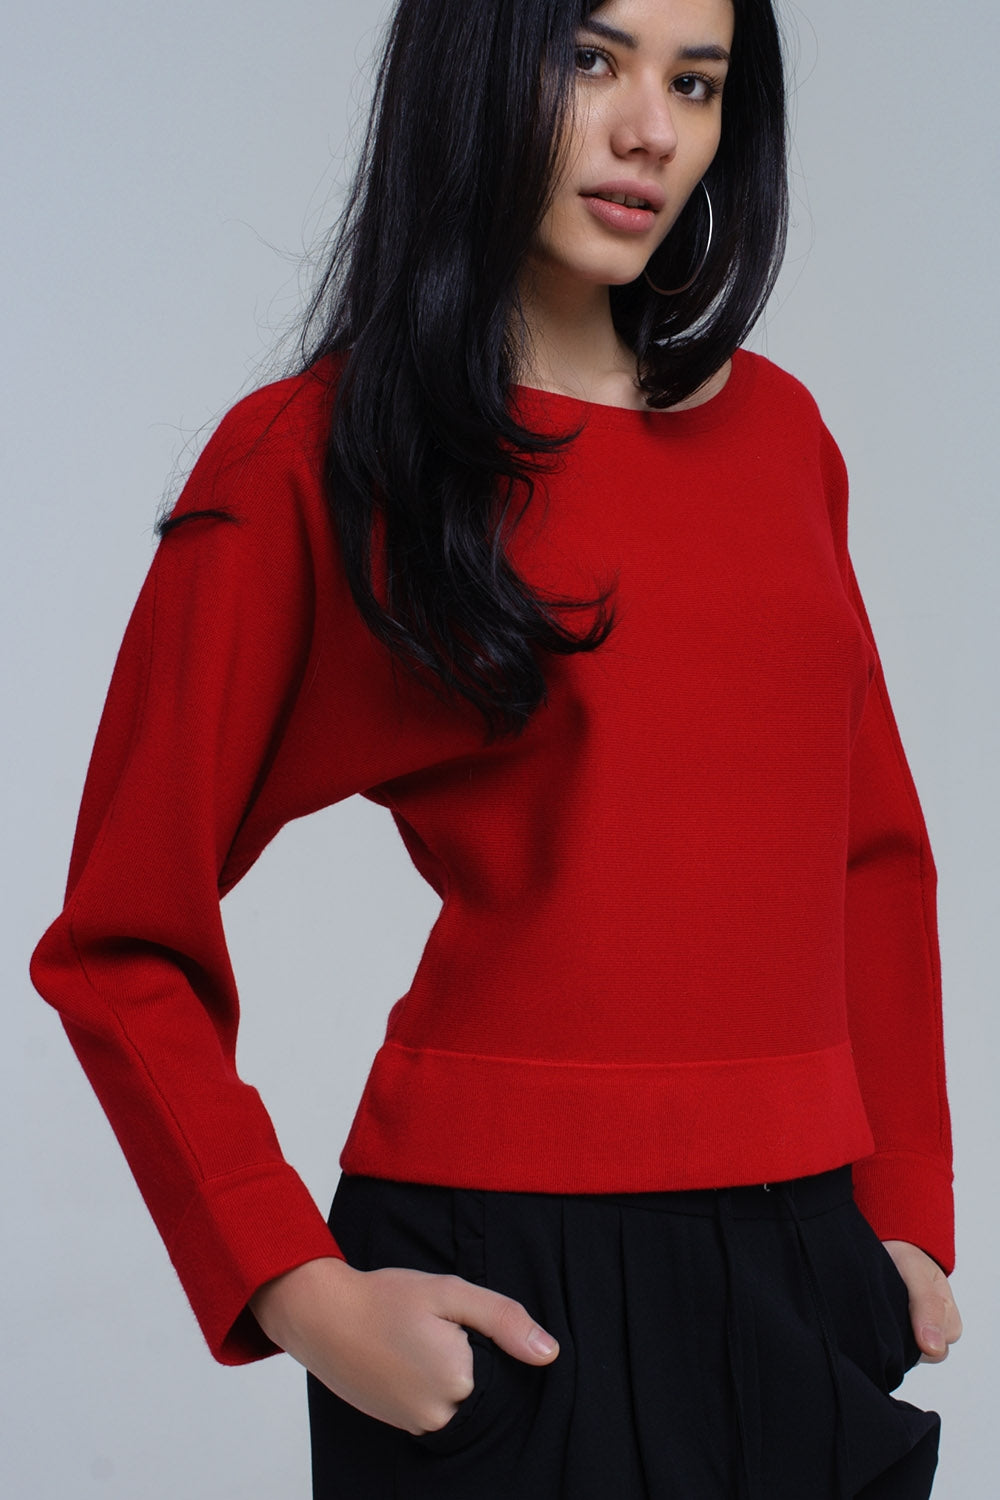 Red Sweater With Boat Neck-Women - Apparel - Sweaters - Pull Over-Product Details Red sweater in soft knit. It has a boat neck with batwing long sleeves.-Keyomi-Sook